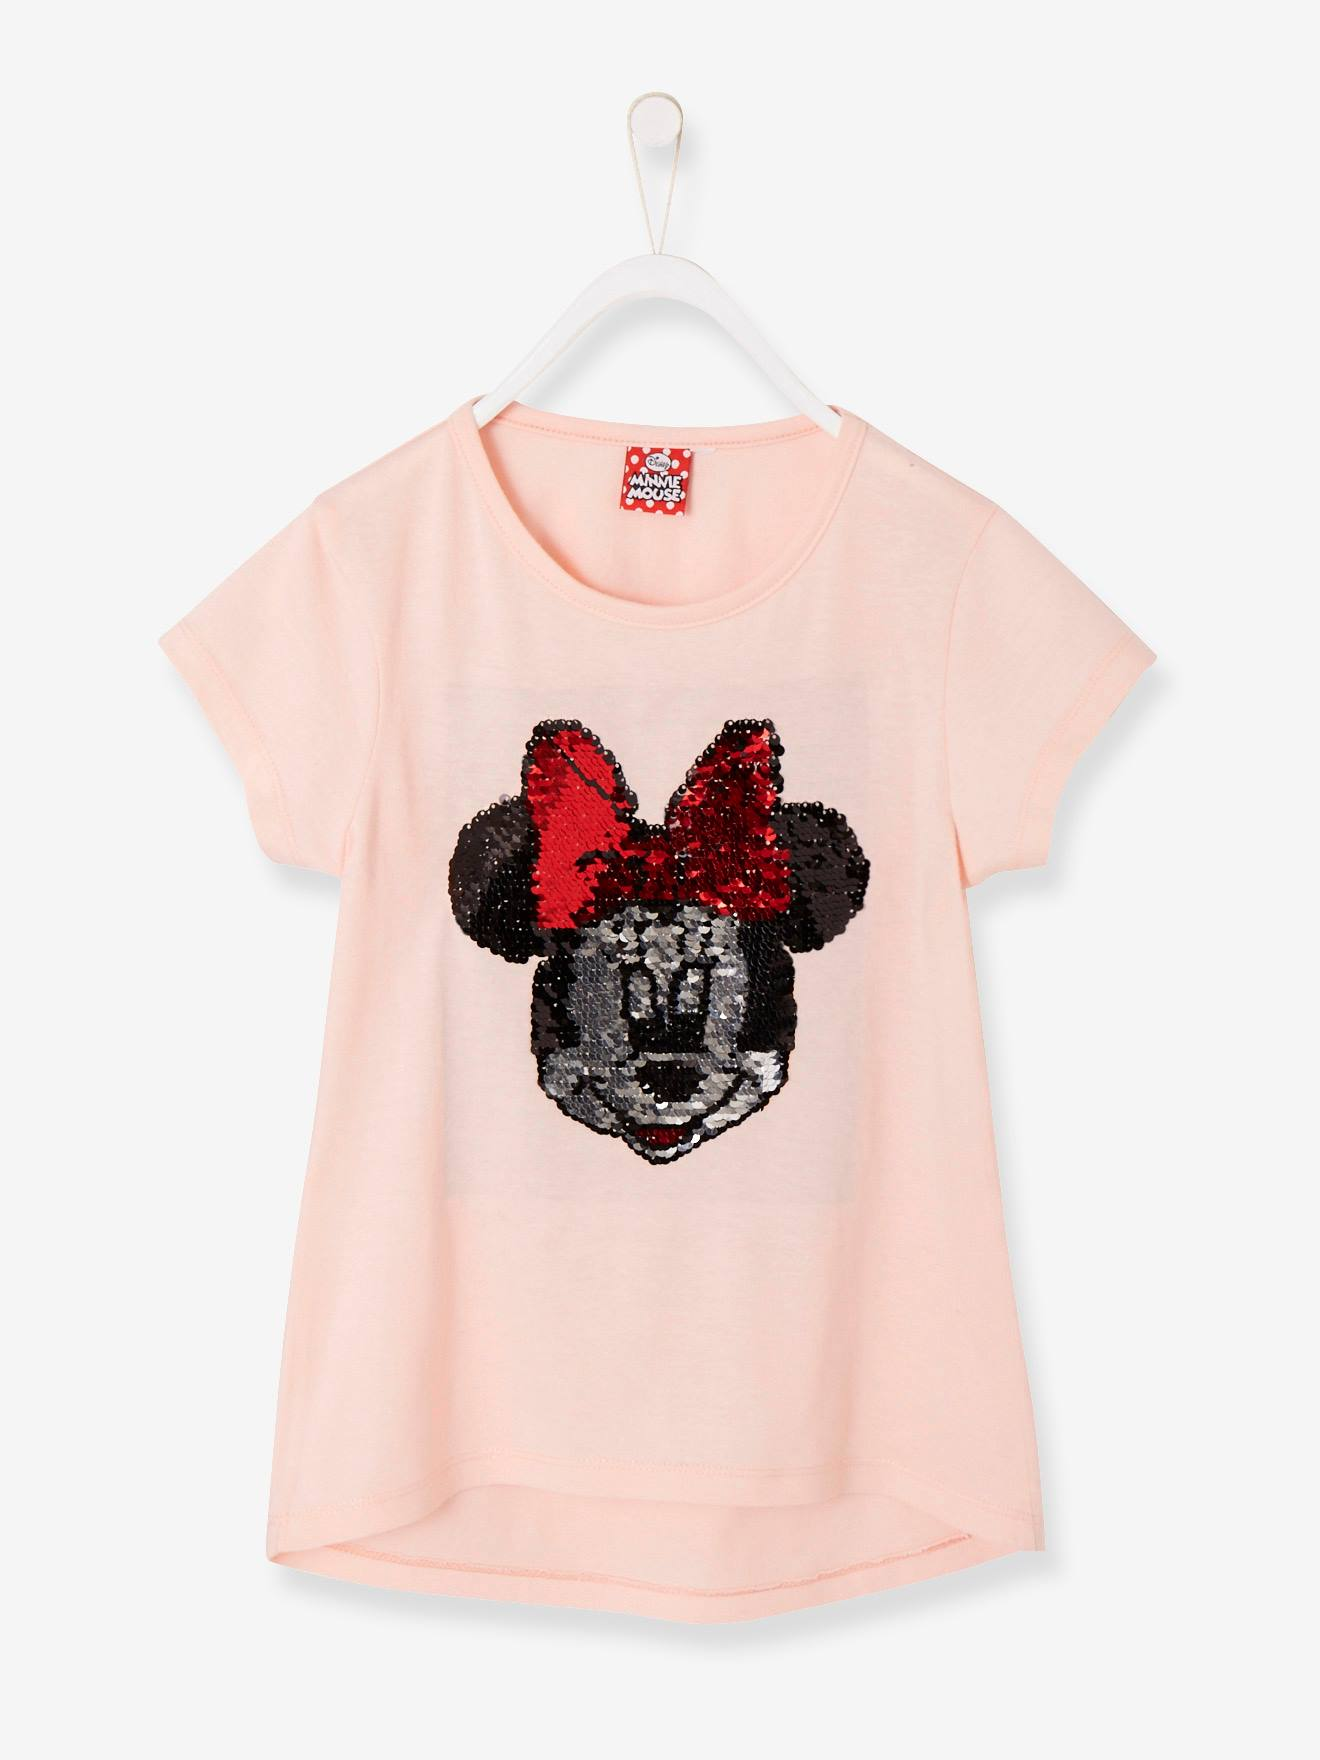 21561d1f3fc29 tee shirt fille sequins - www.goldpoint.be